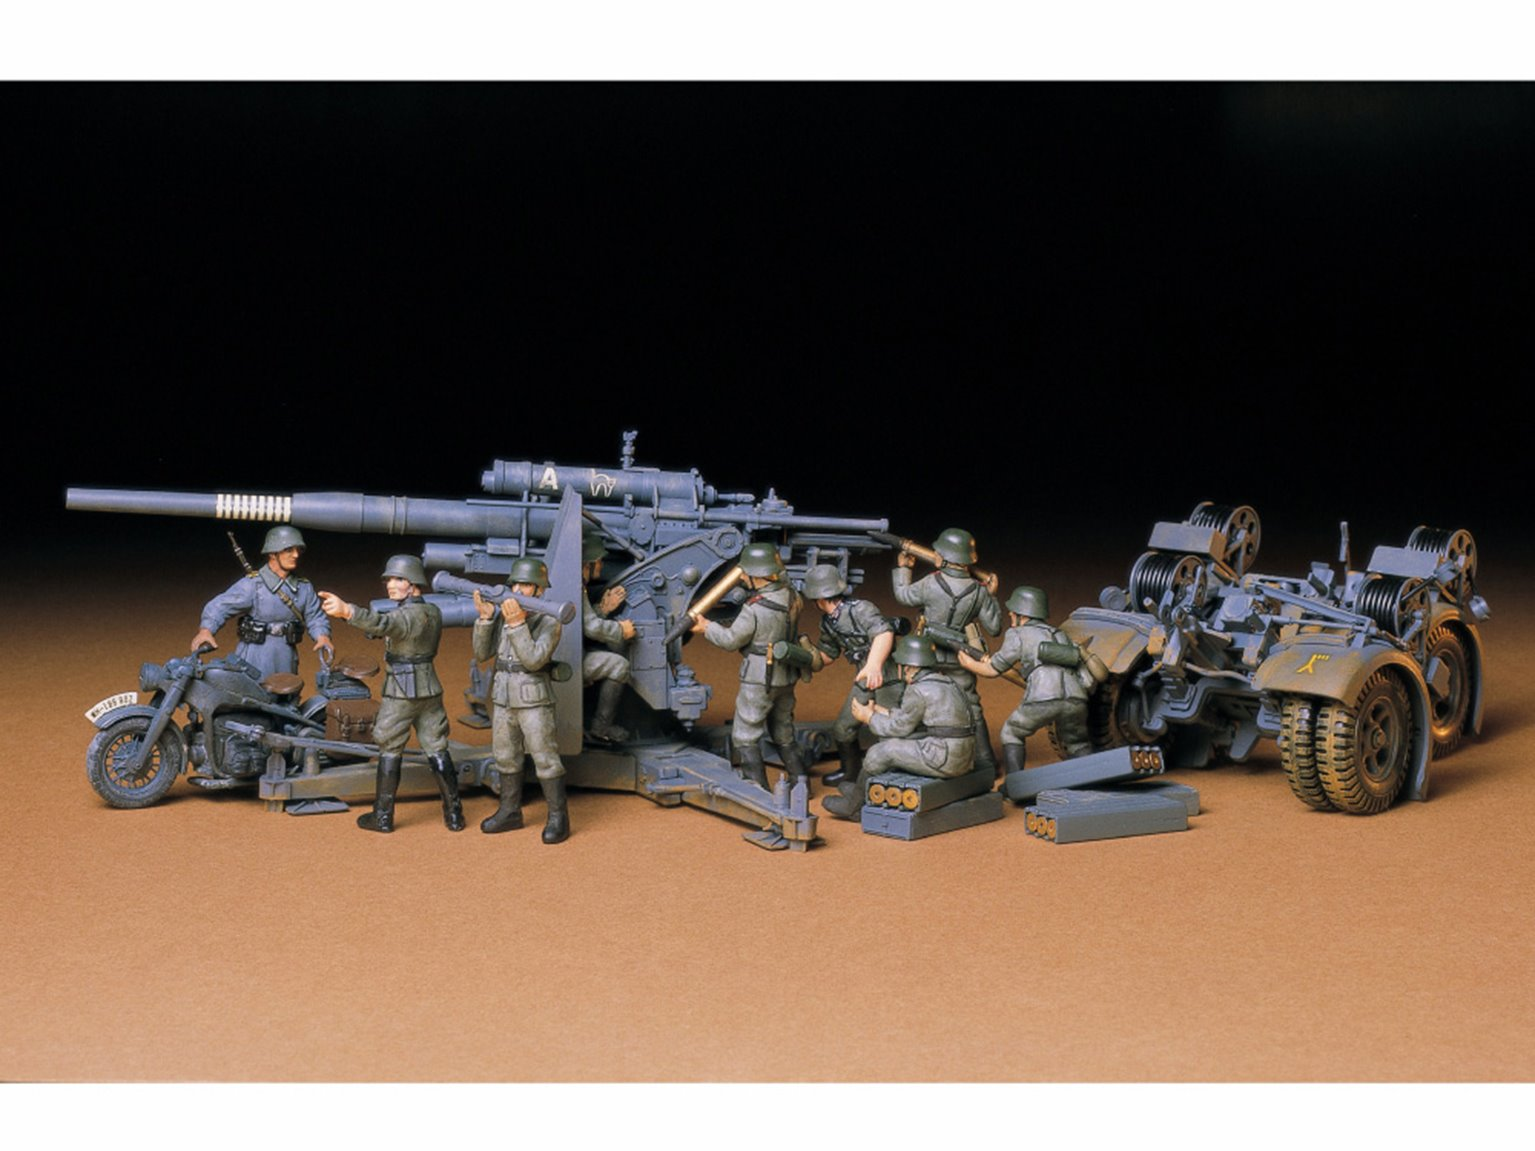 1:35 Military Miniature Series no.17 German 88mm Gun Flak 36/37